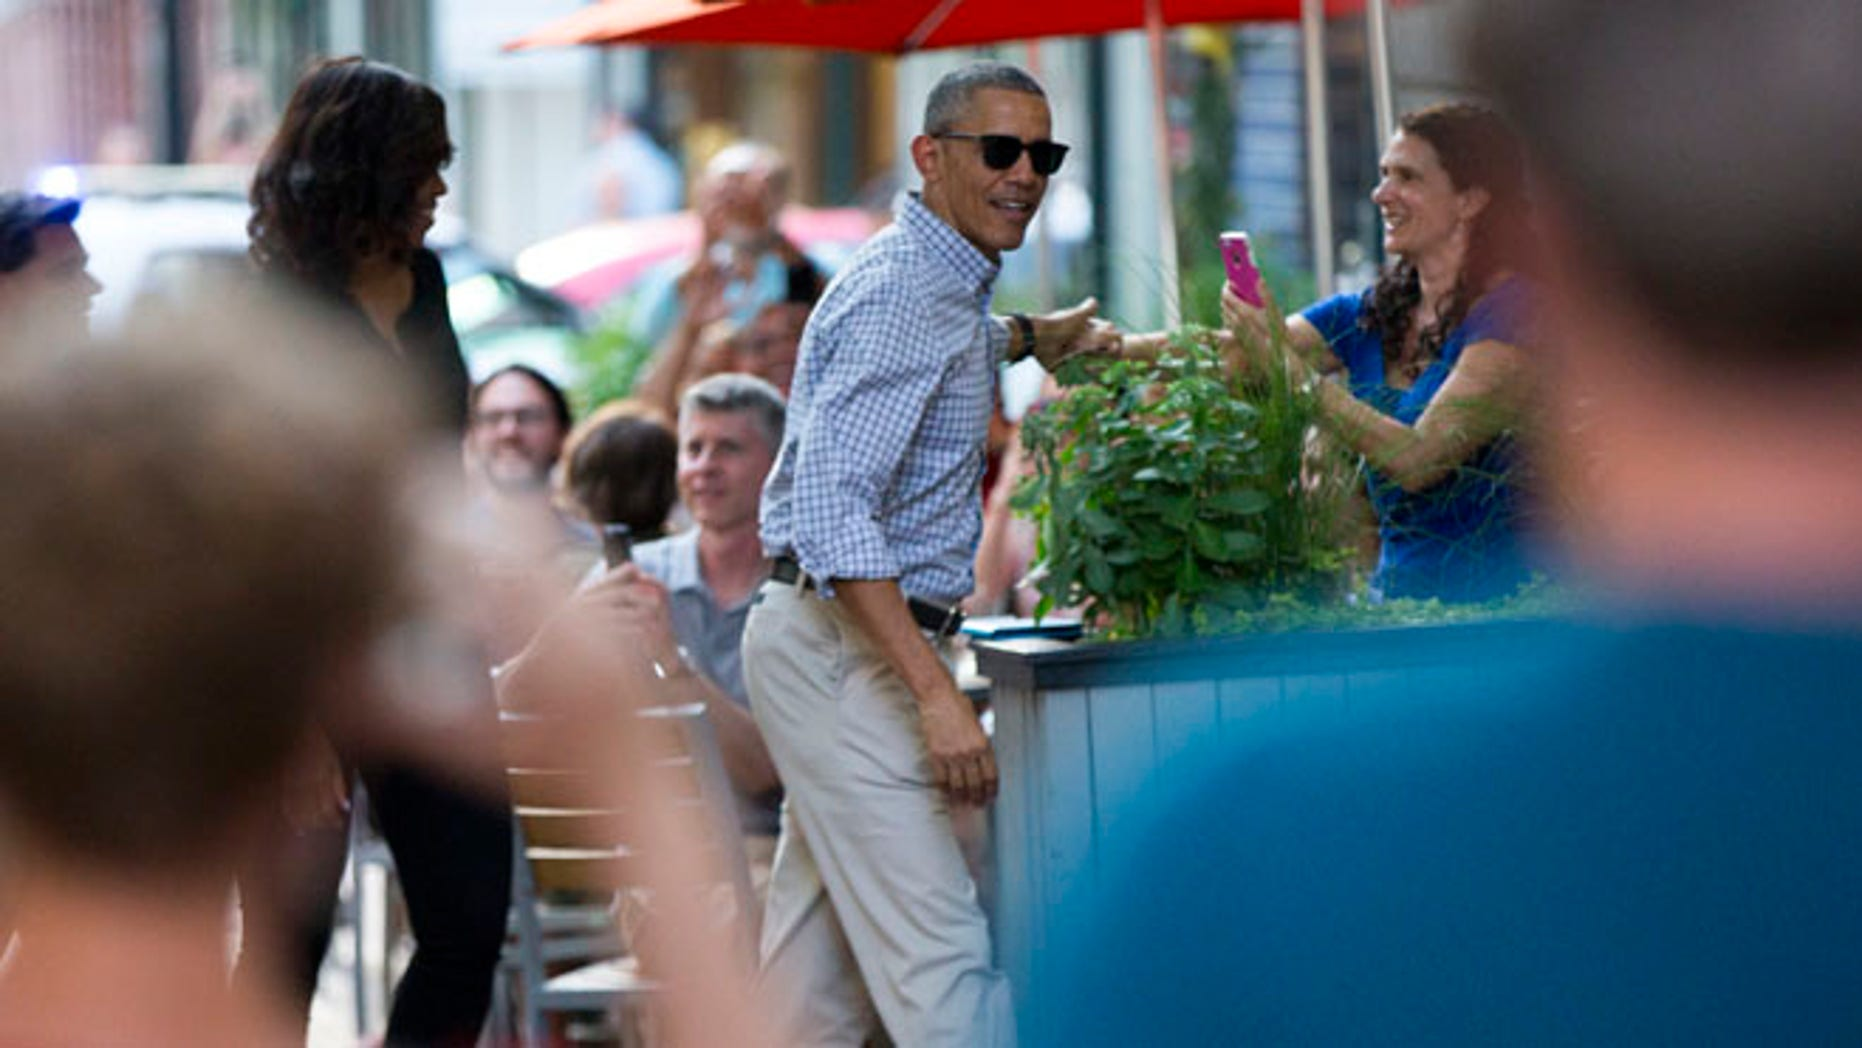 People take photographs as President Barack Obama, center, and first lady Michelle Obama walk into the Oyamel Cocina Mexicana restaurant in Washington for dinner on Saturday, May 28, 2016. (AP Photo/Evan Vucci)